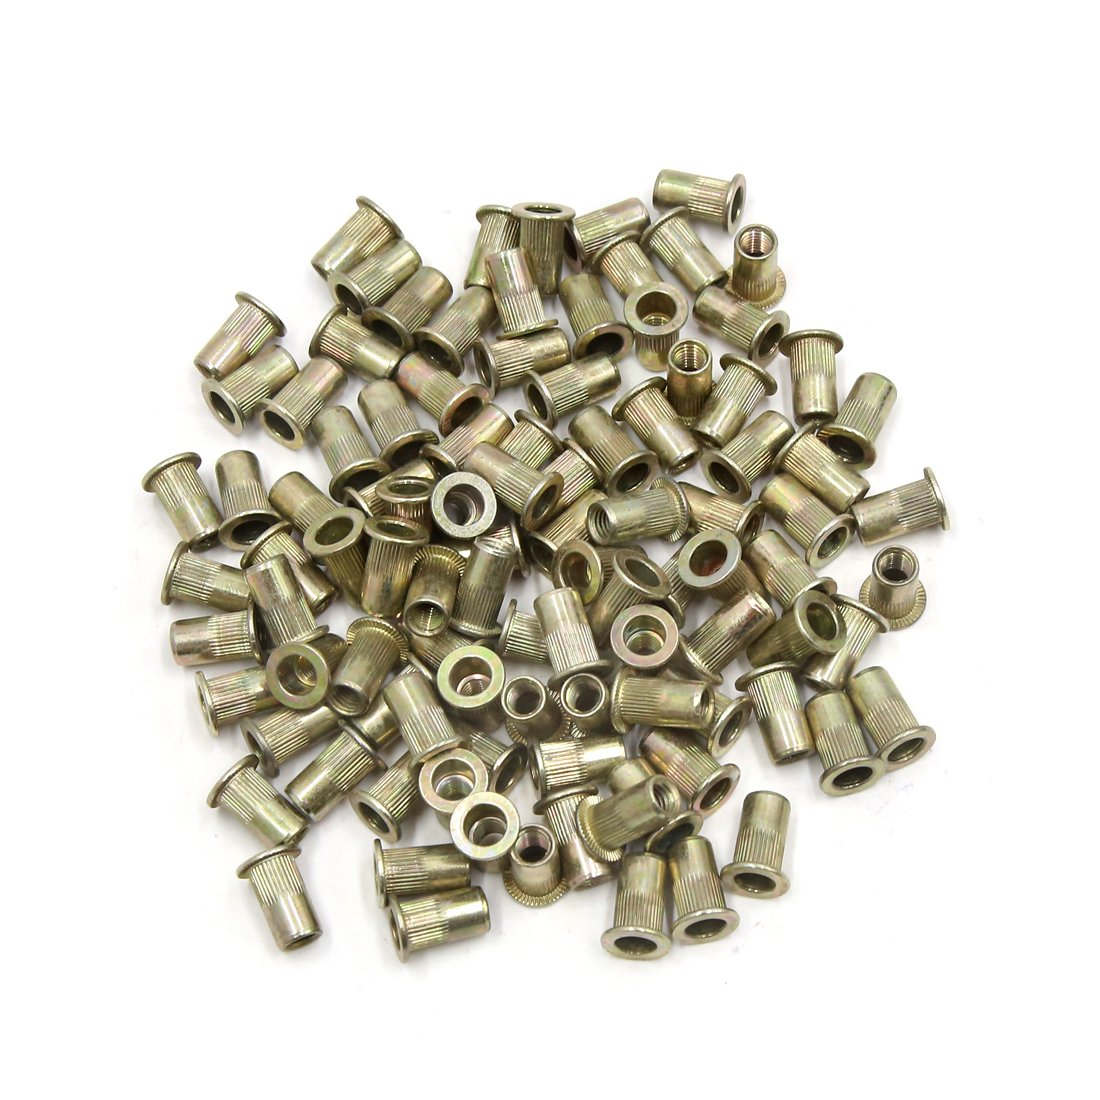 uxcell a17052500ux0286 100Pcs M5 Gold Tone Stainless Steel 304 Flat Head Type Rivet Nut Insert Nutsert, 100 Pack